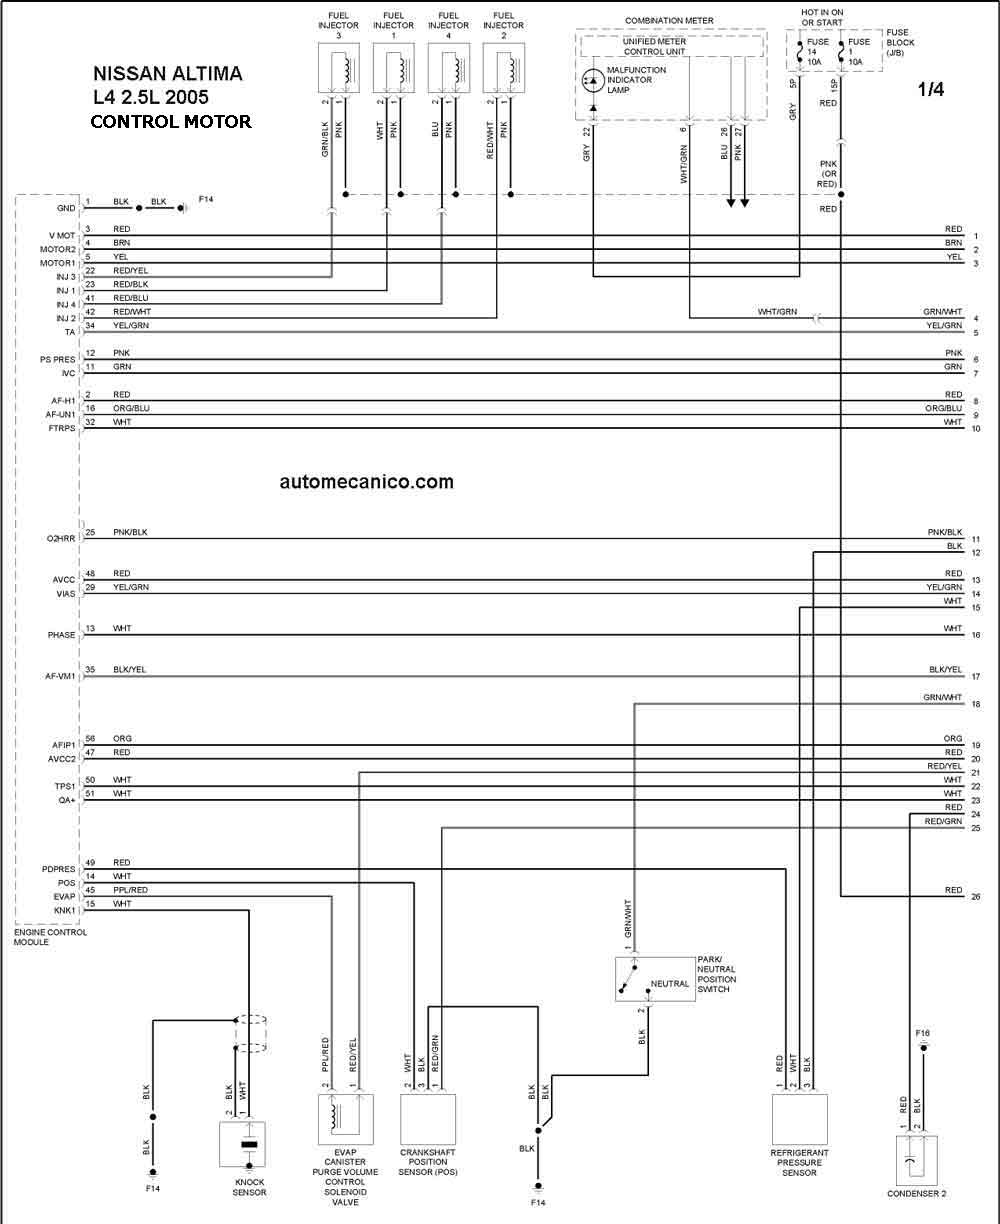 Jetta Fuse Box Diagram Nissan 2005 Diagramas Esquemas Graphics Vehiculos